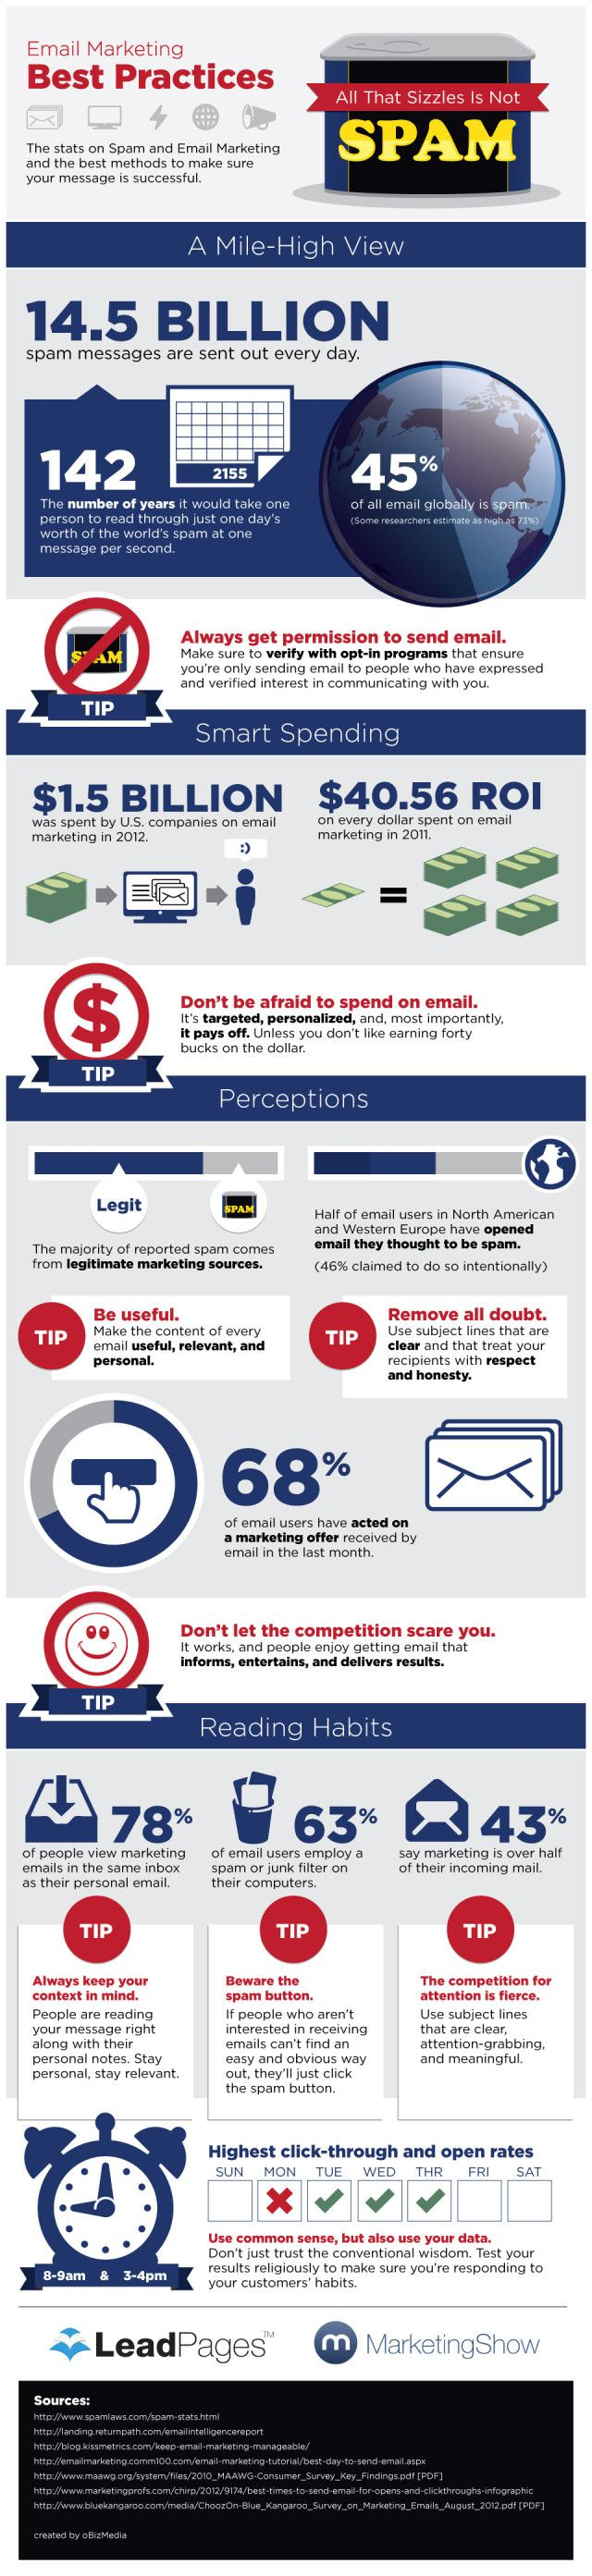 Email Marketing Tips, Stats and Best Practices